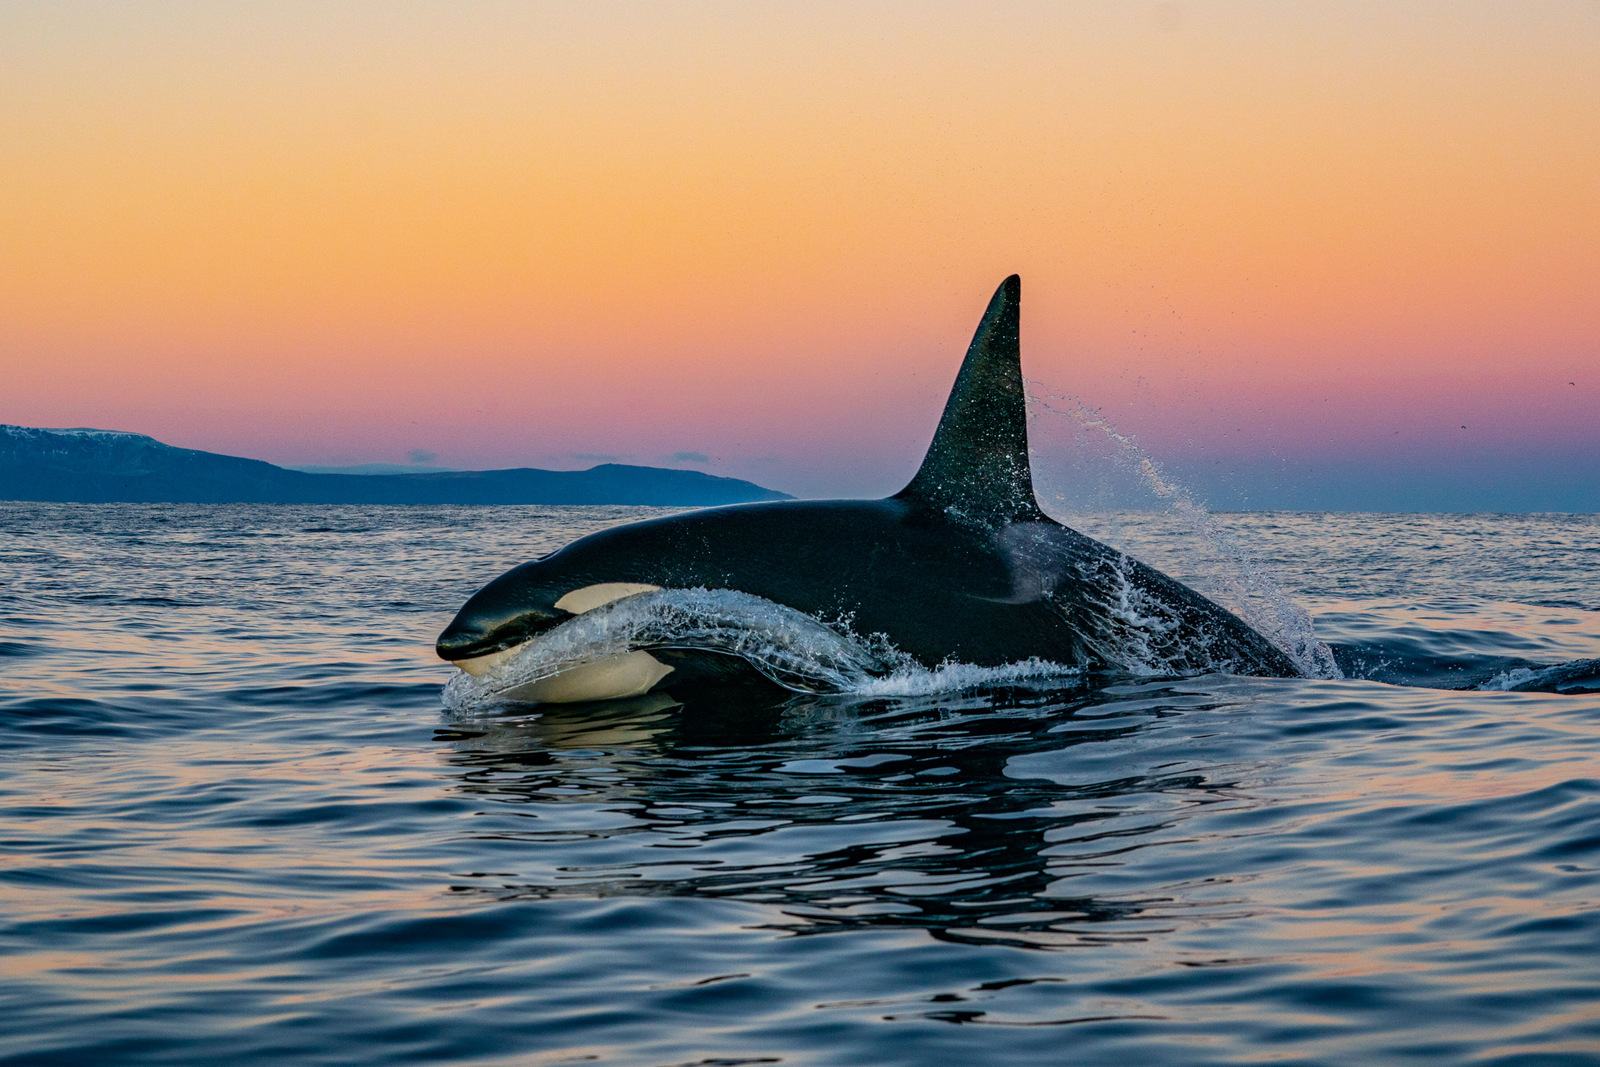 Image: A killer whale leaps from the water with the Norwegian sunset behind.